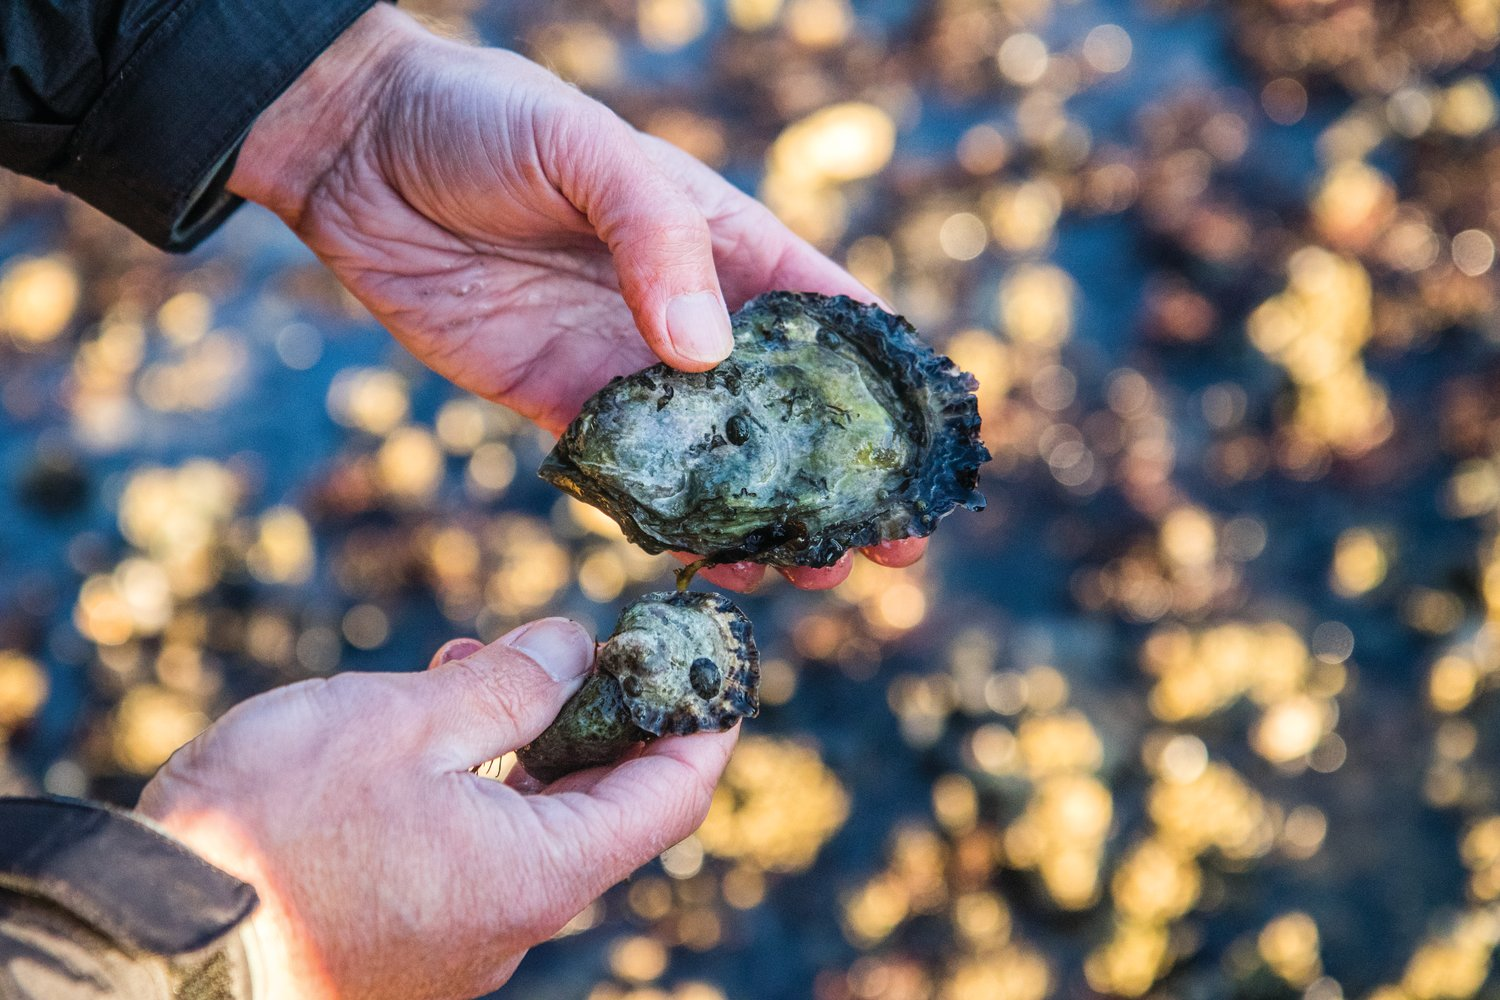 Side by side, the differences between a Pacific oyster and the smaller, rounder Olympia oyster are obvious. While Pacific oysters are non-native, they aren't a harmful invasive species and still help the ecosystem with their water filtration. However, the native Olympia oysters create a specific habitat that researchers are hoping to restore.